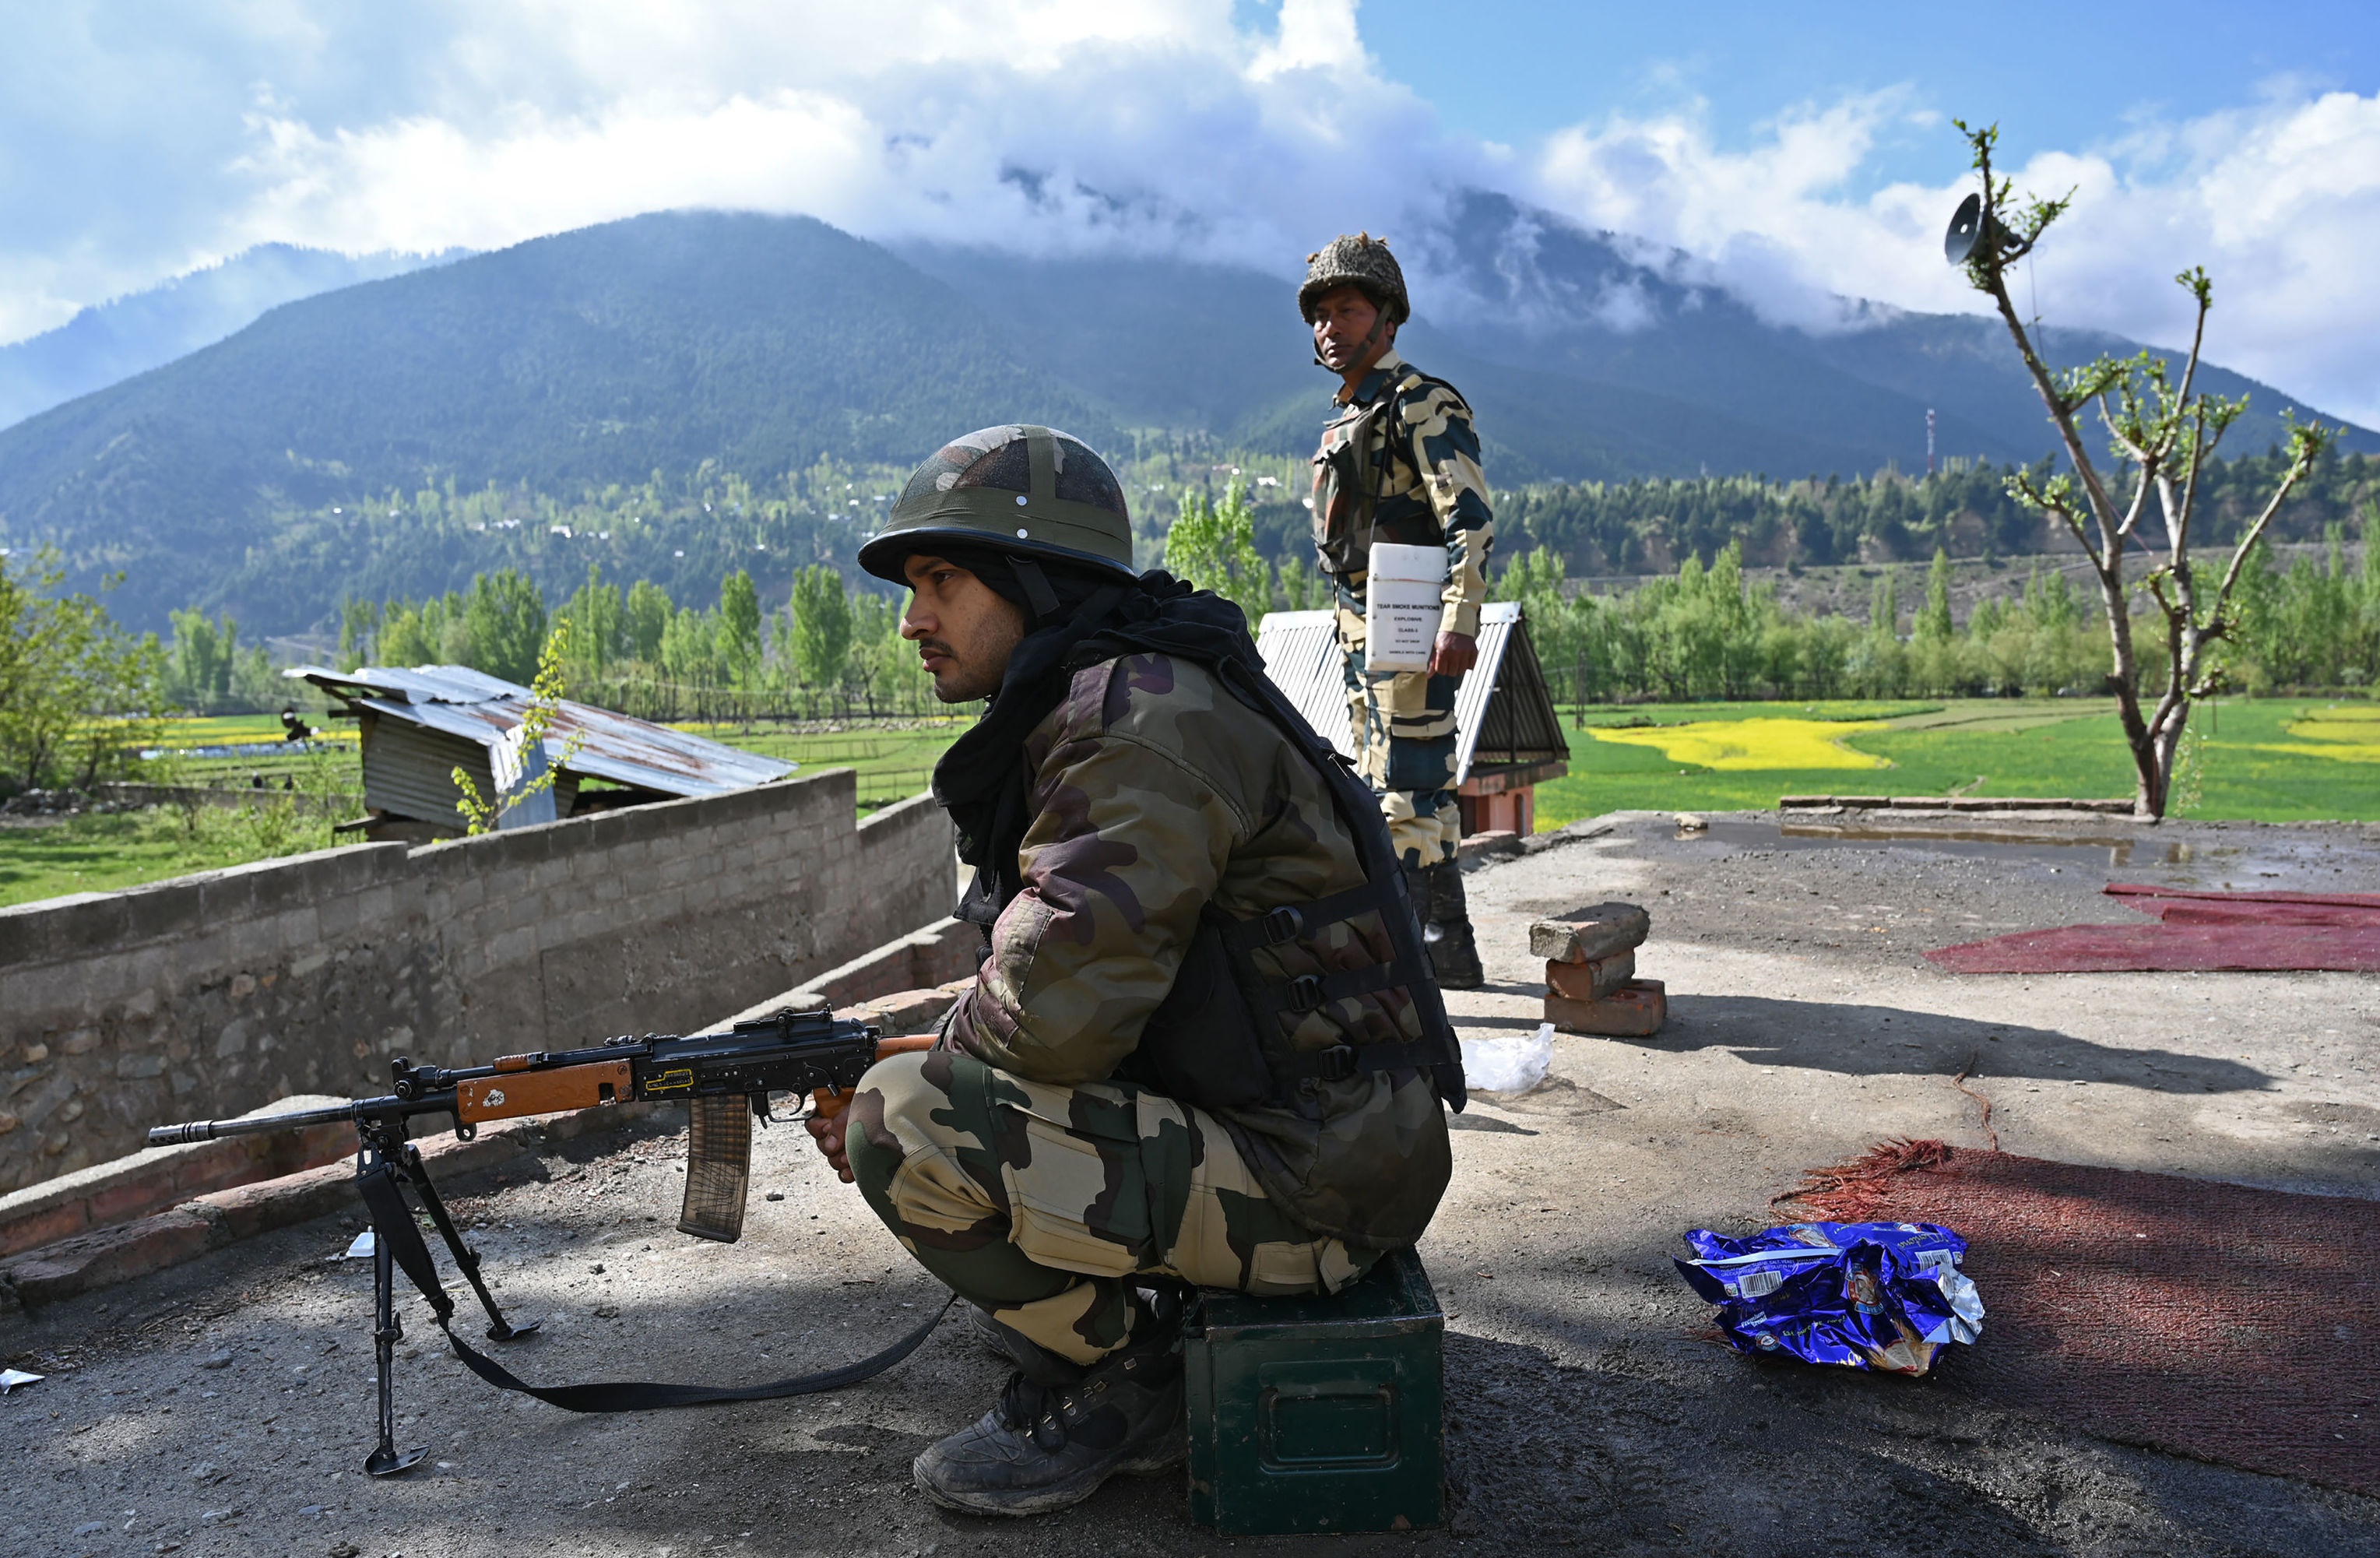 Indian Border Security Force (BSF) soldiers stand guard on the top of a polling station during a second phase of elections at Kangan, some 35 km from Srinagar on April 18, 2019